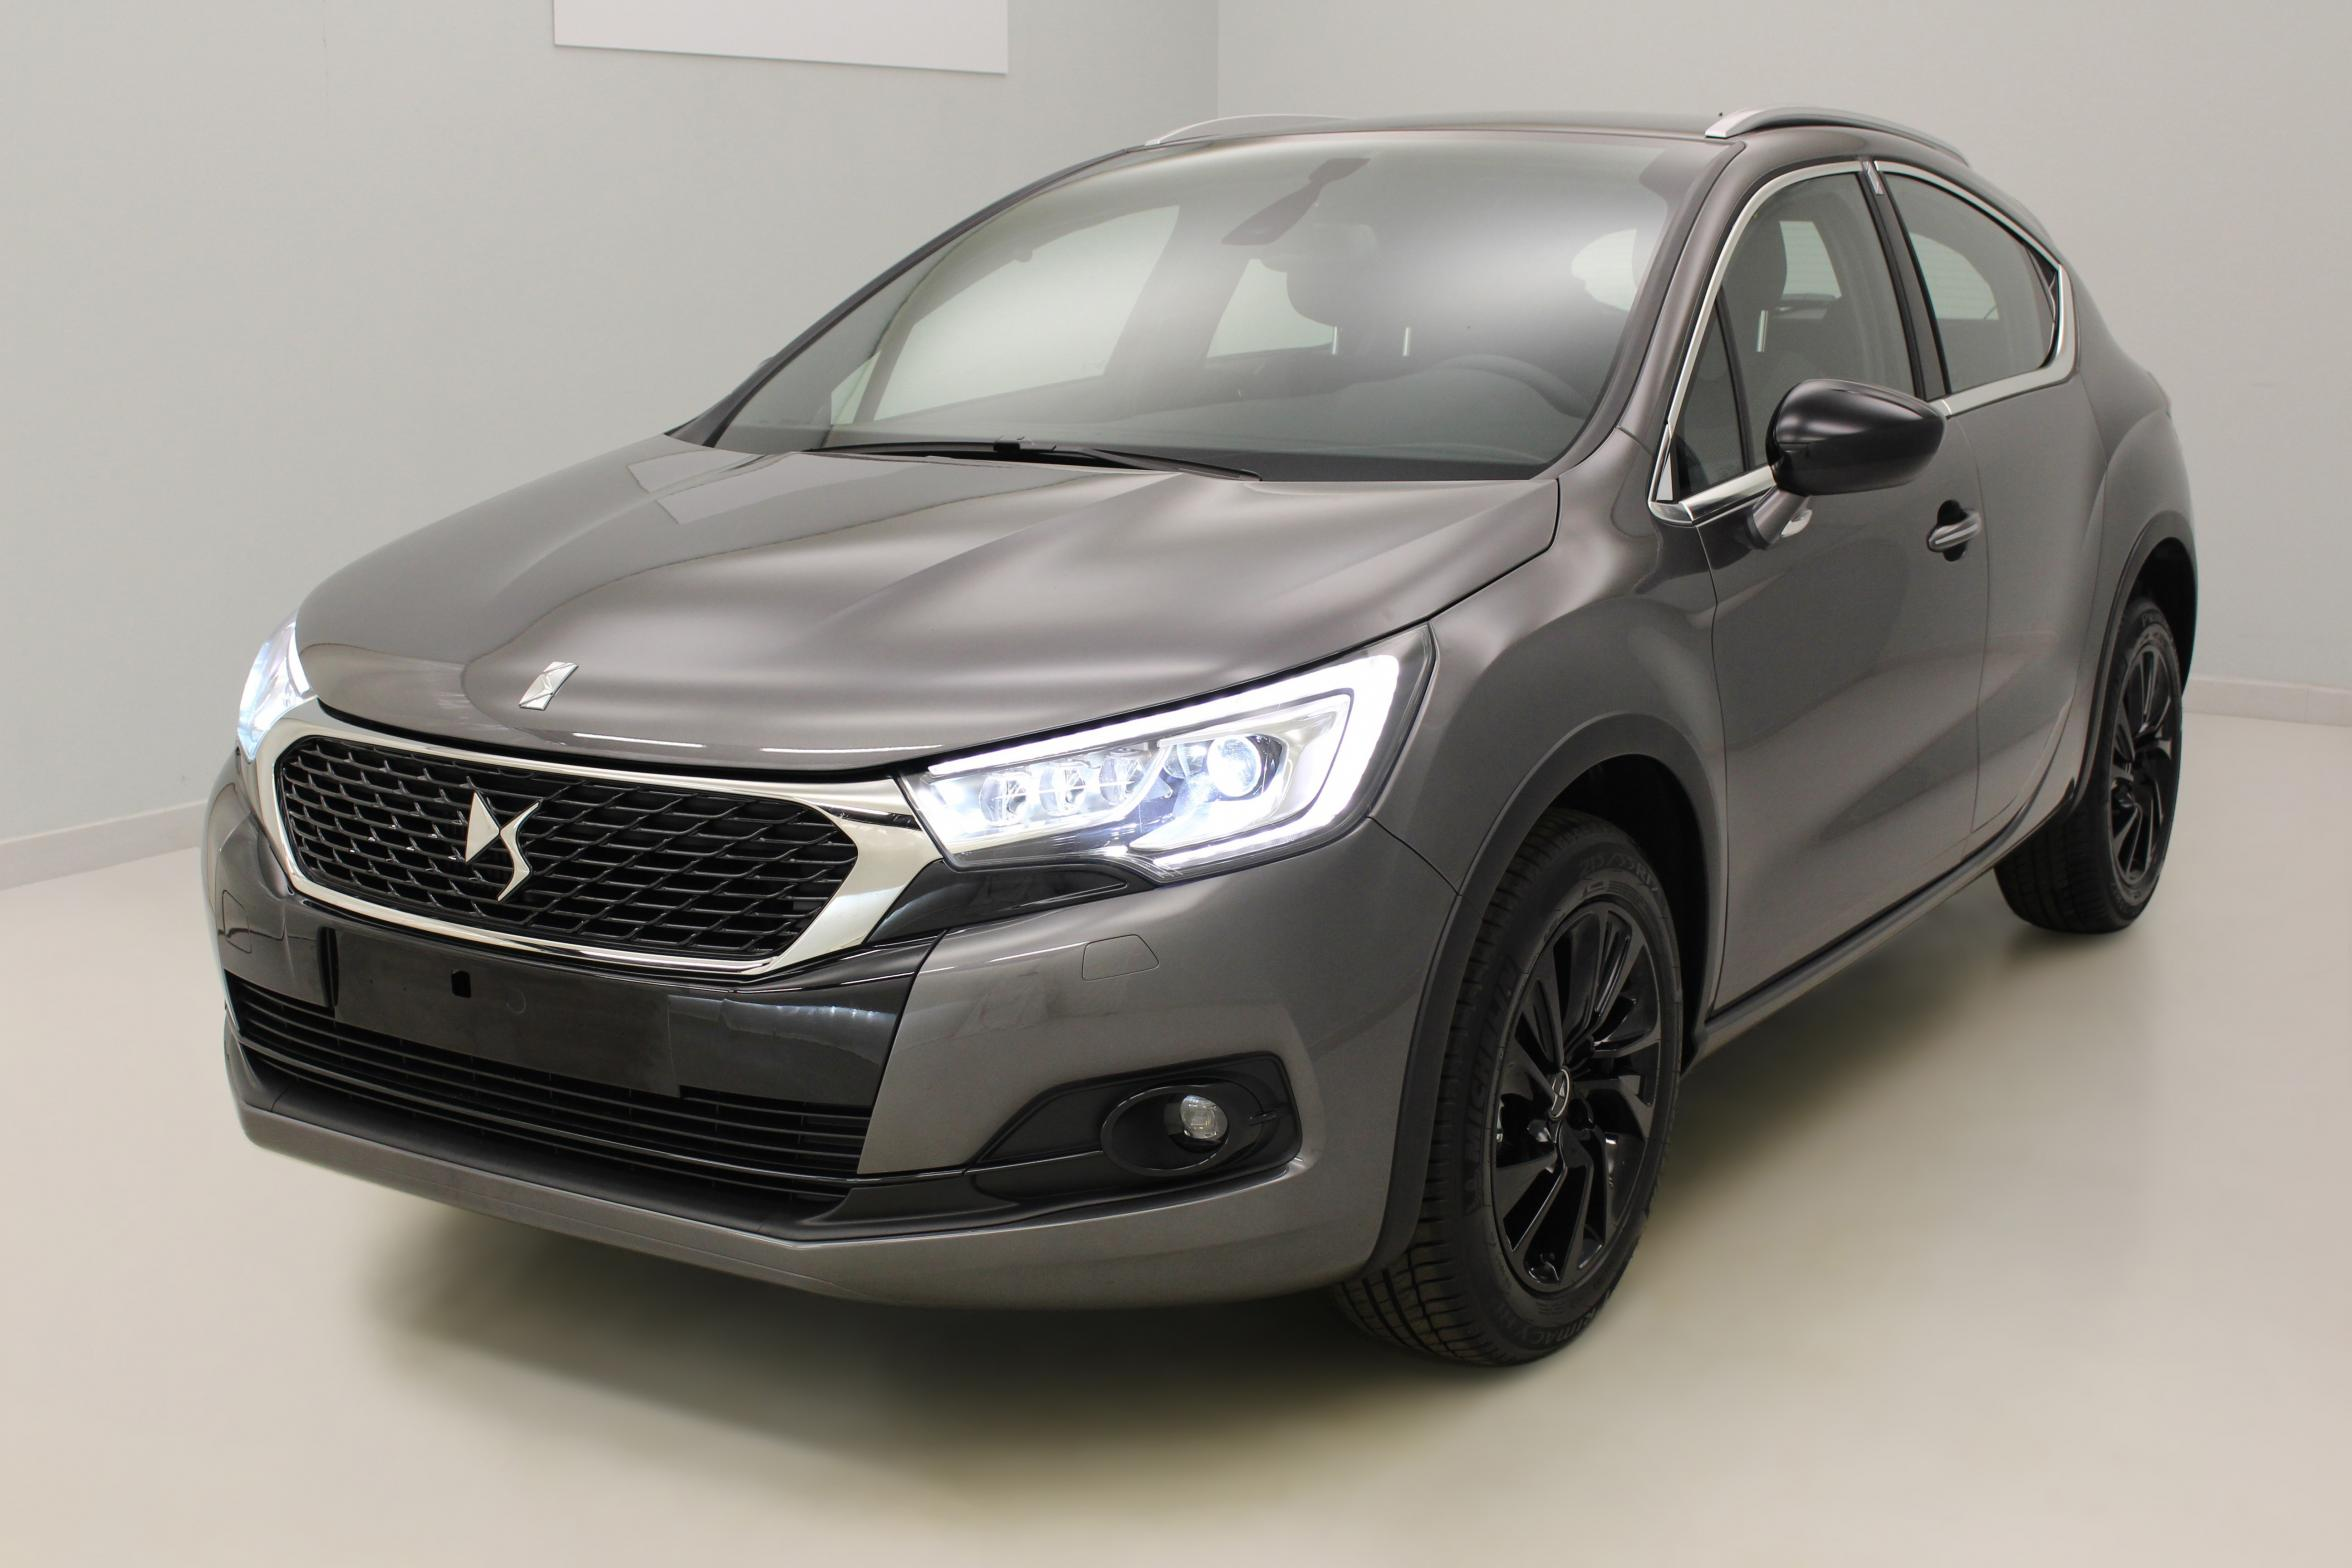 DS DS4Crossback PureTech 130 S&S BVM6 Be Chic Gris Platinium + Pack So Chic avec options